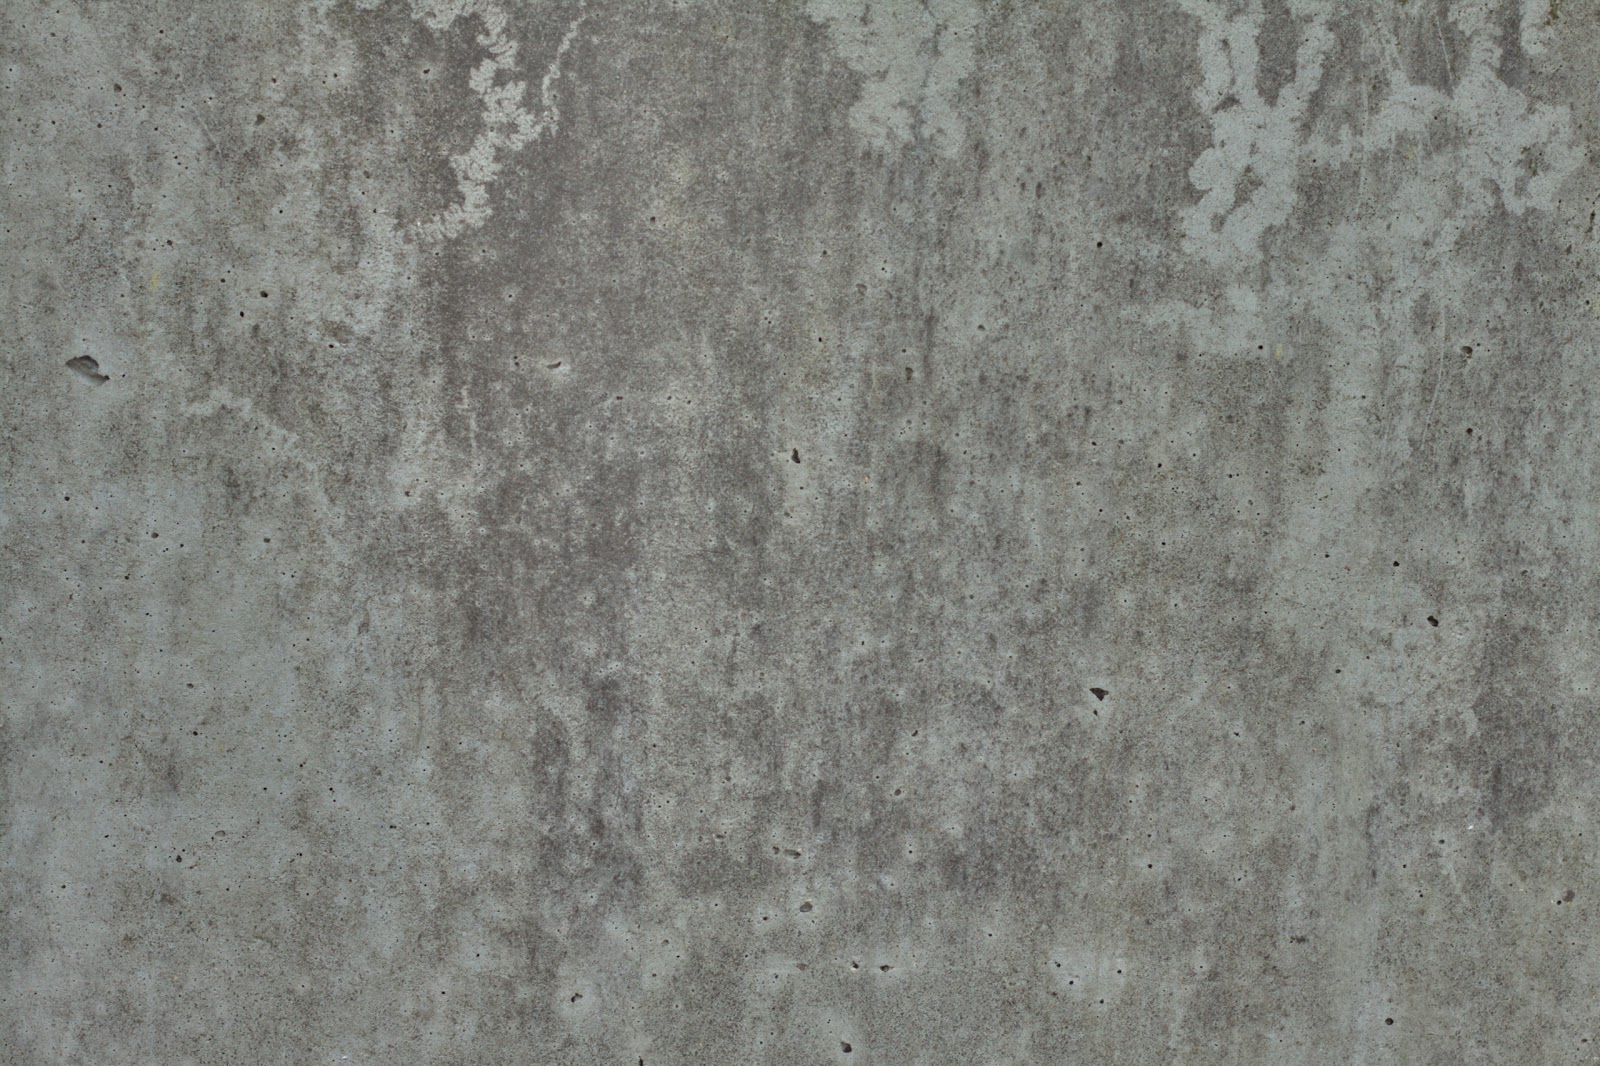 3d Faux Stone Wallpaper High Resolution Seamless Textures Concrete Wall Smooth